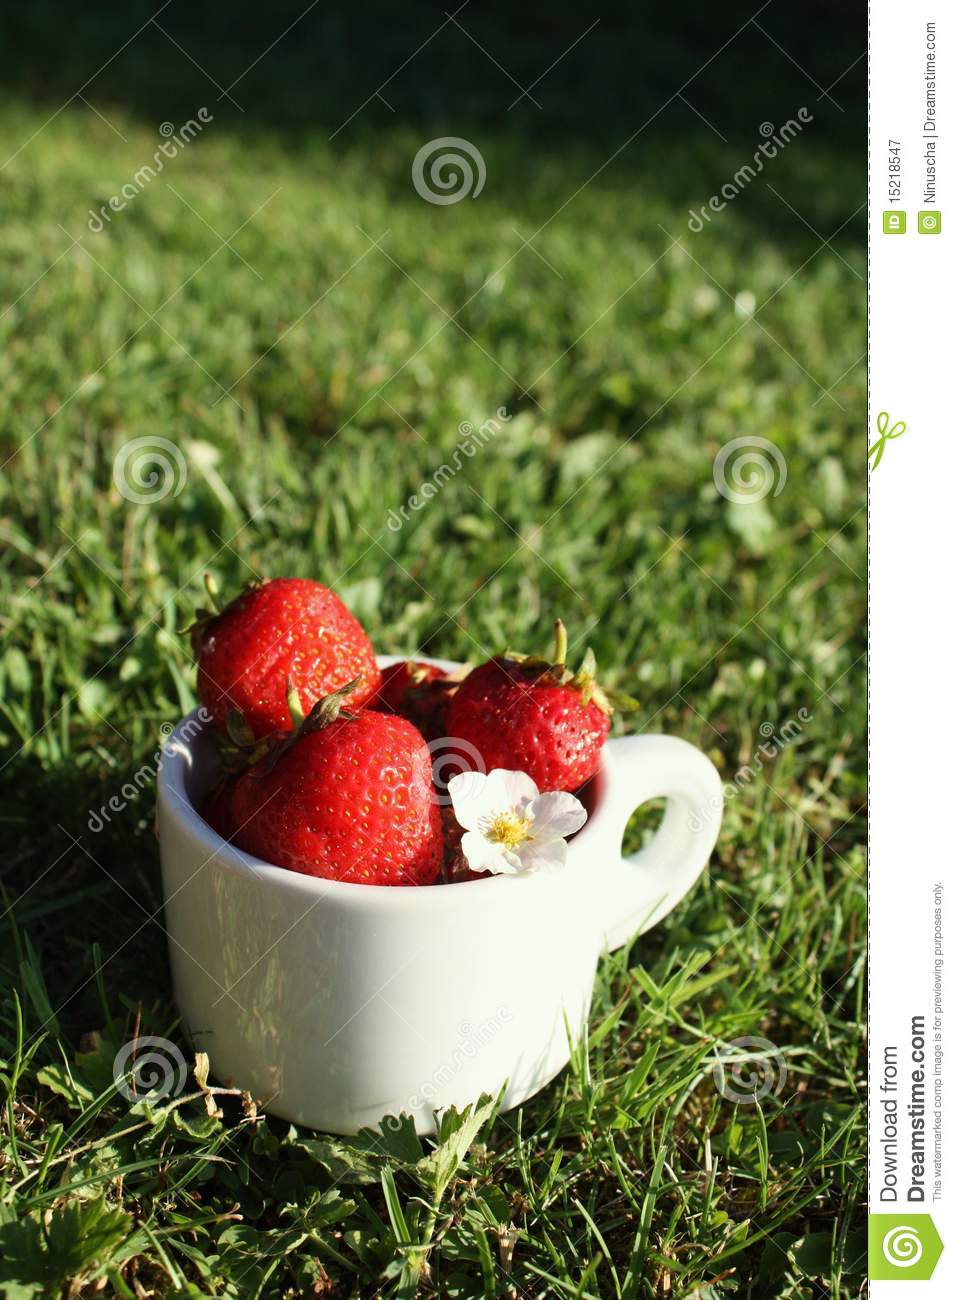 Strawberries in the white cup